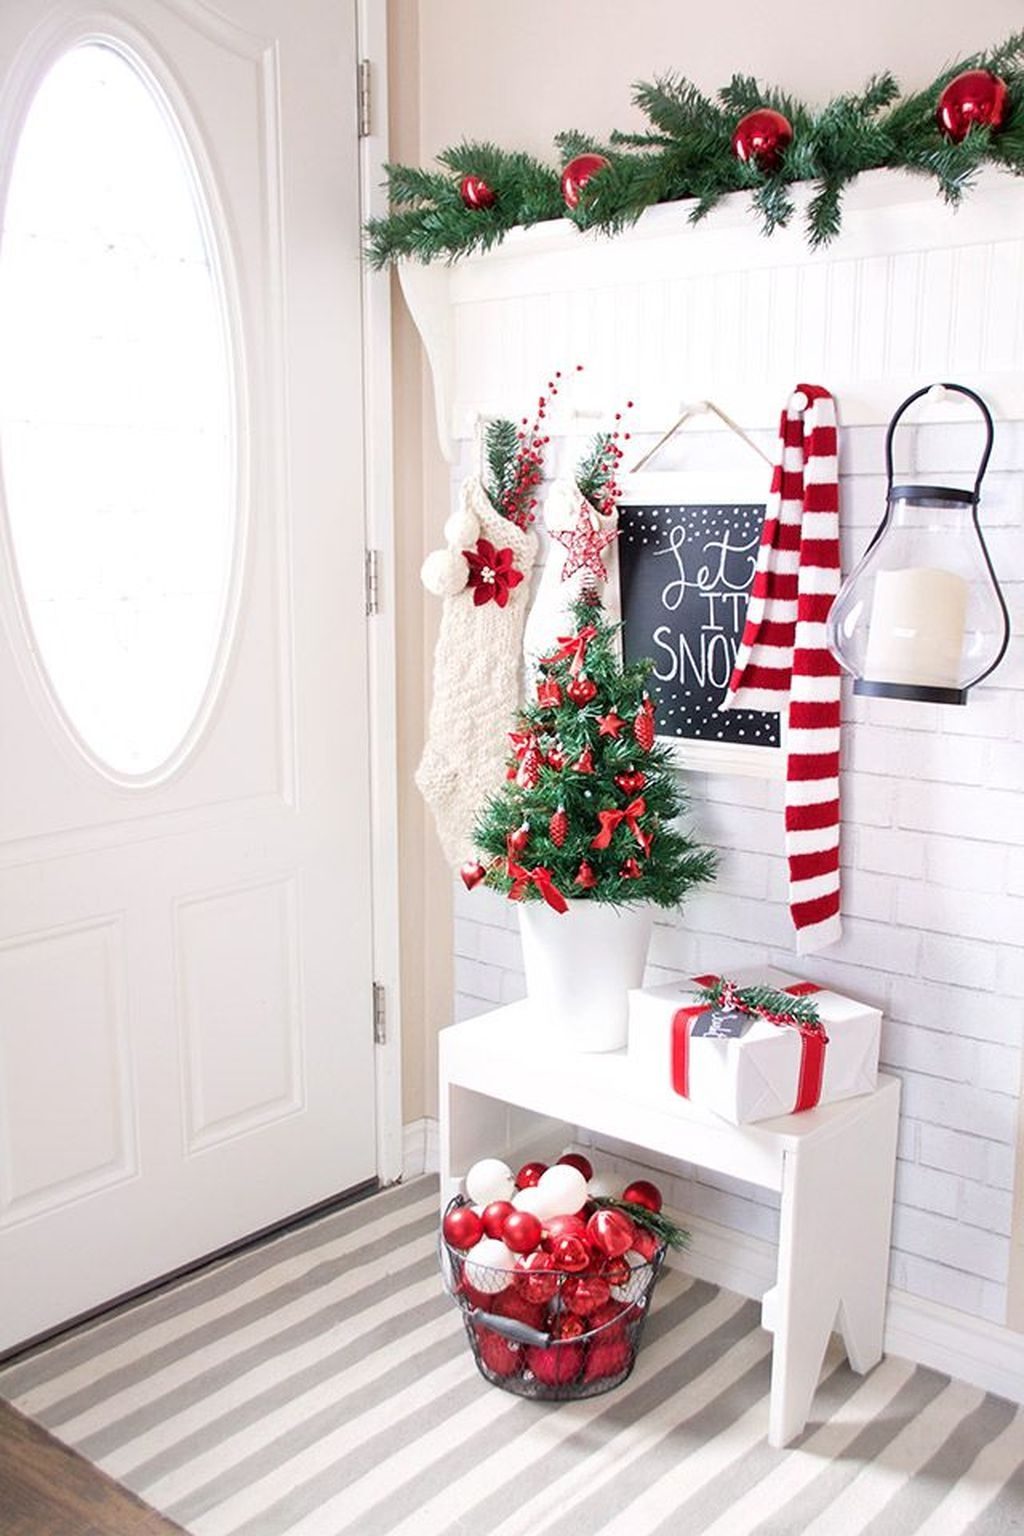 Unordinary Christmas Home Decor Ideas 51